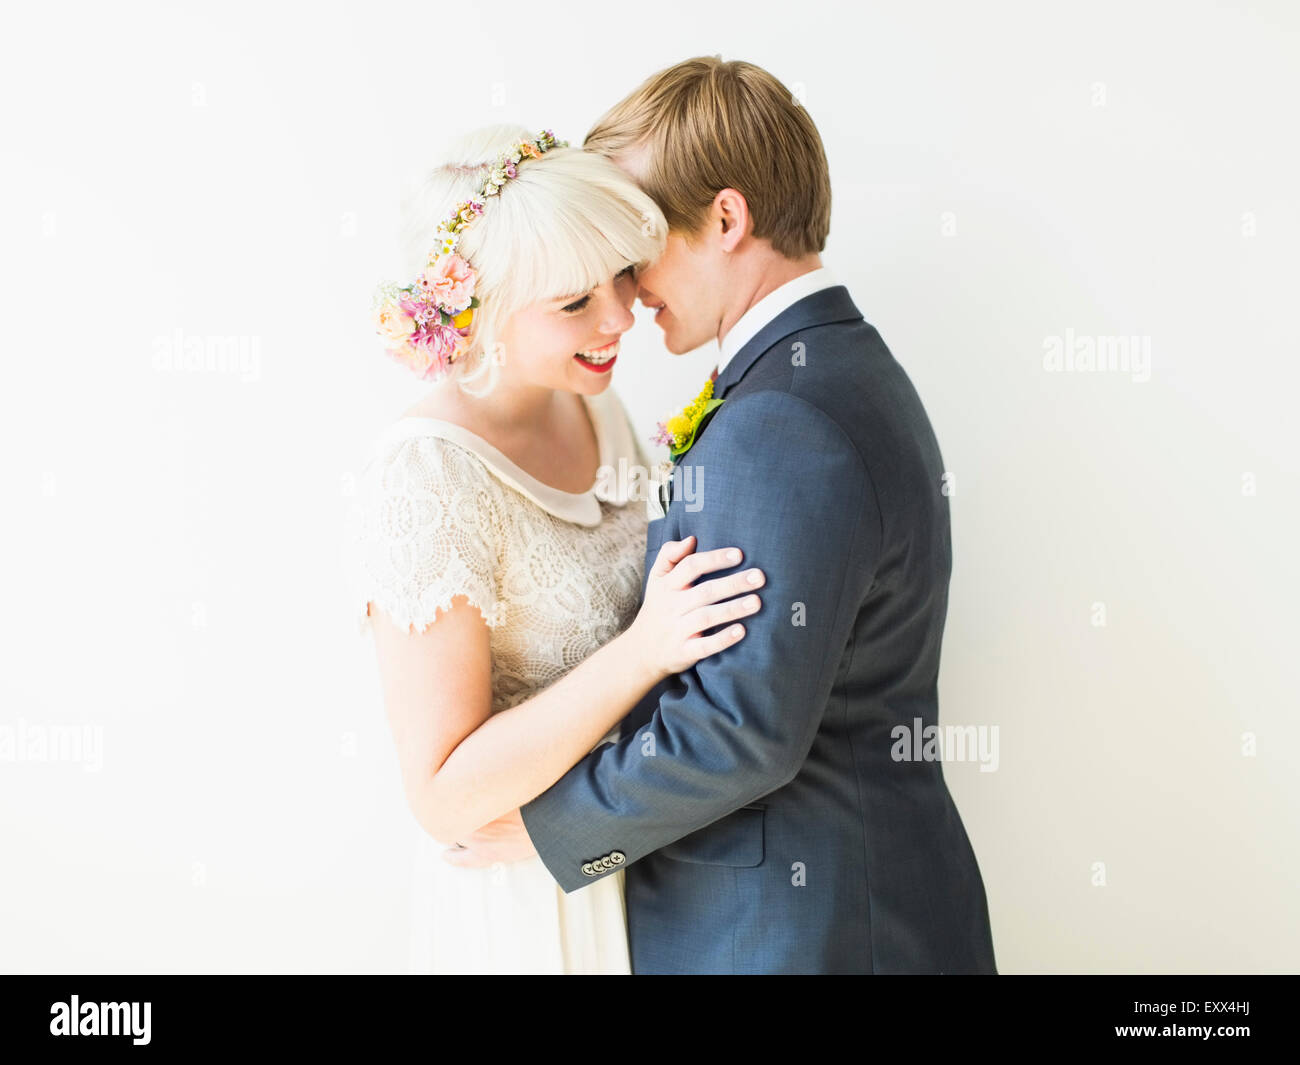 Smiling newlywed couple embracing - Stock Image